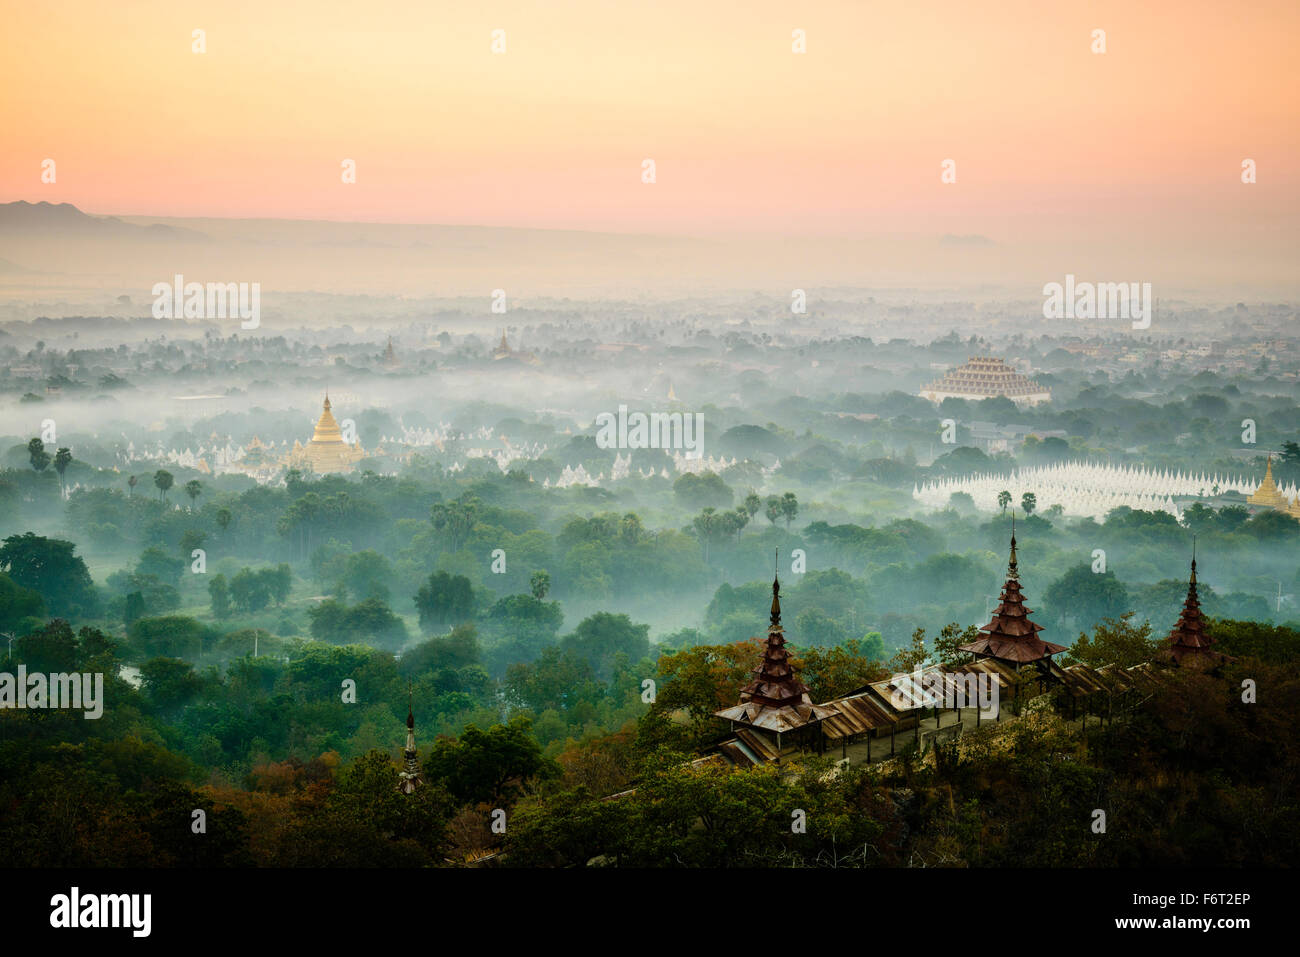 Aerial view of towers in misty landscape Stock Photo